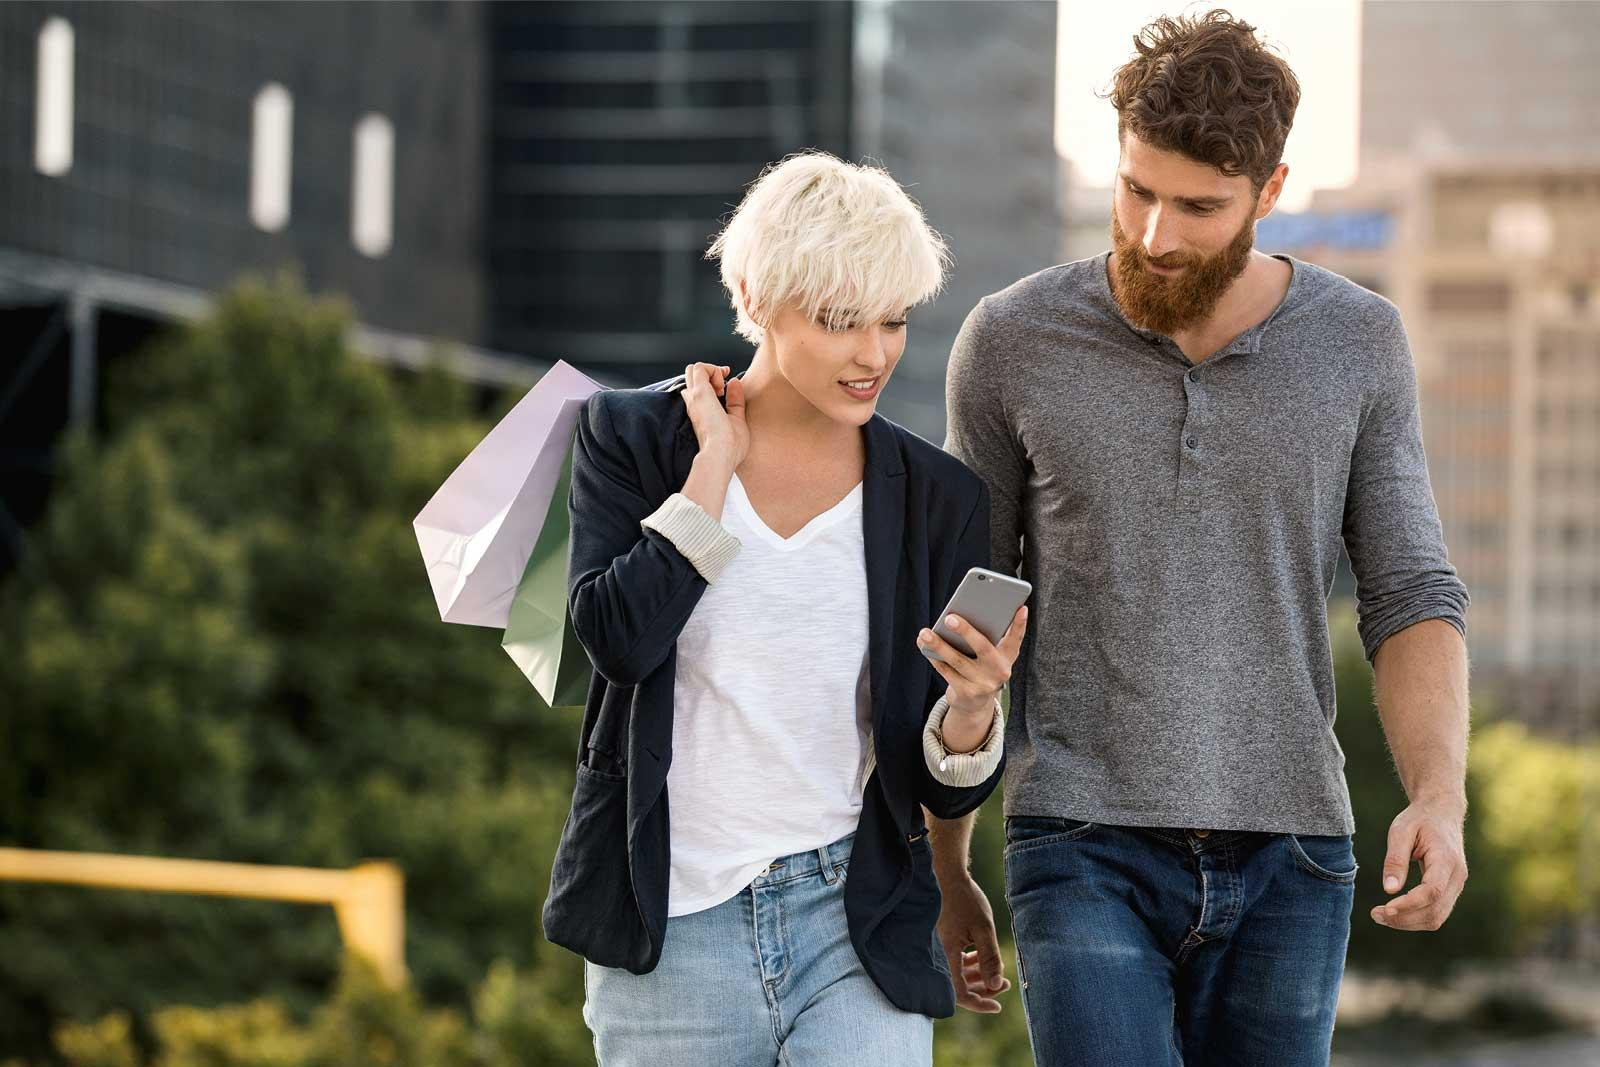 young-couple-man-woman-walking--street-phone-teaser.jpg